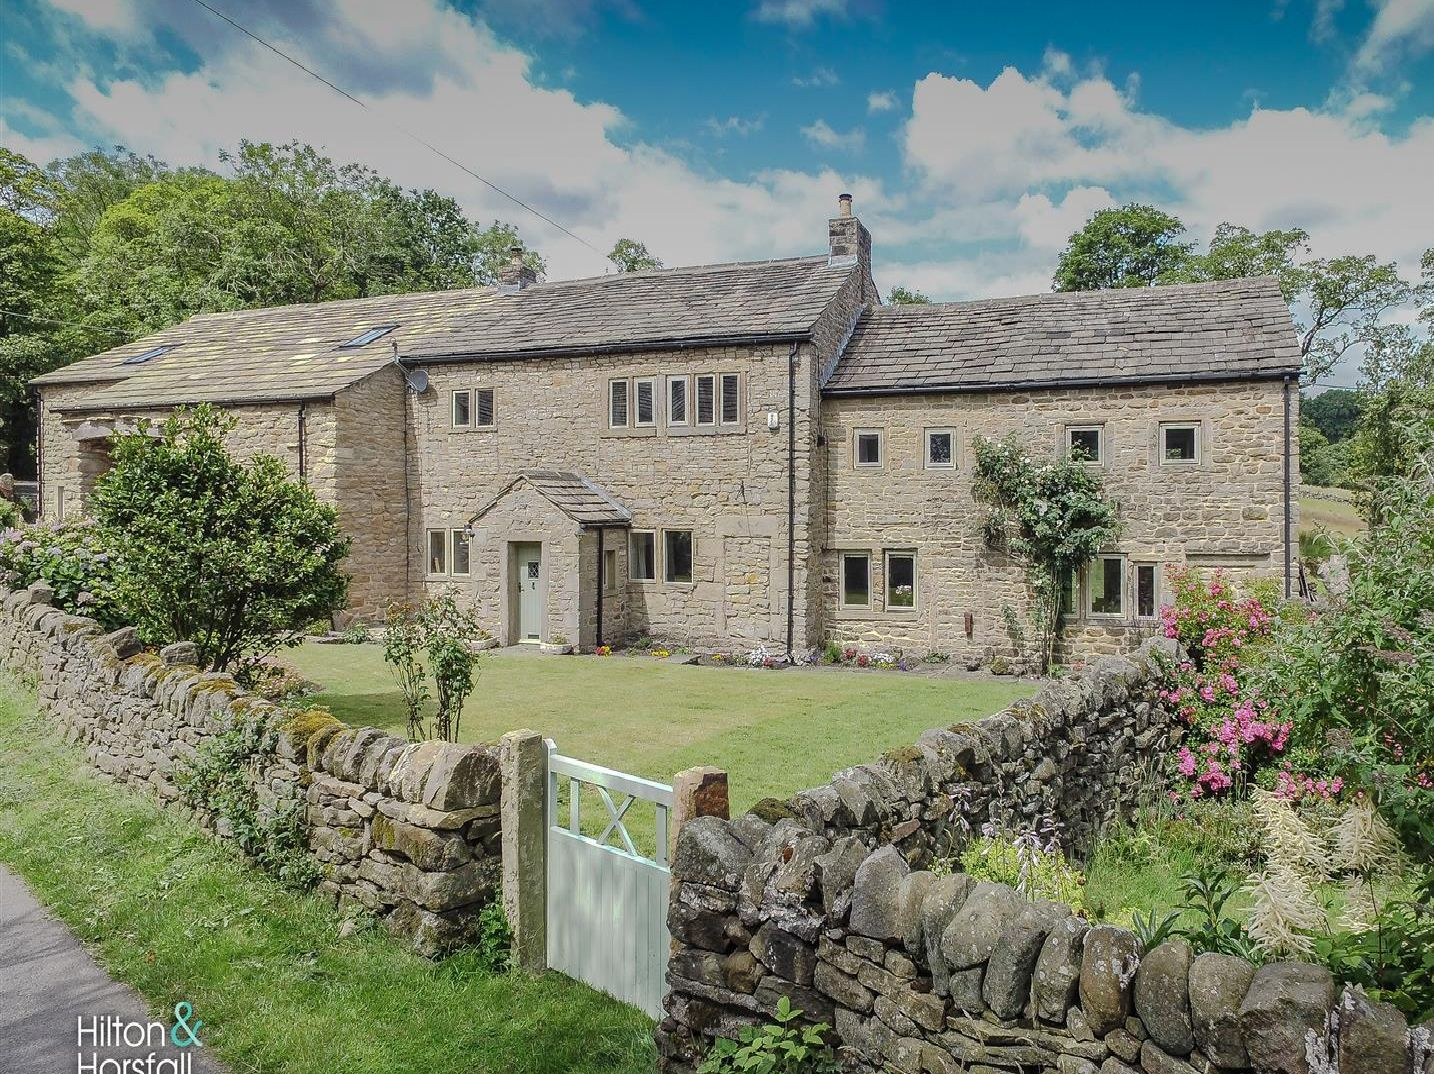 A charming four-bedroom conversion, Hey Fold Cottage is on the market withHilton & Horsfall for574,950. (copyright: Hilton & Horsfall)